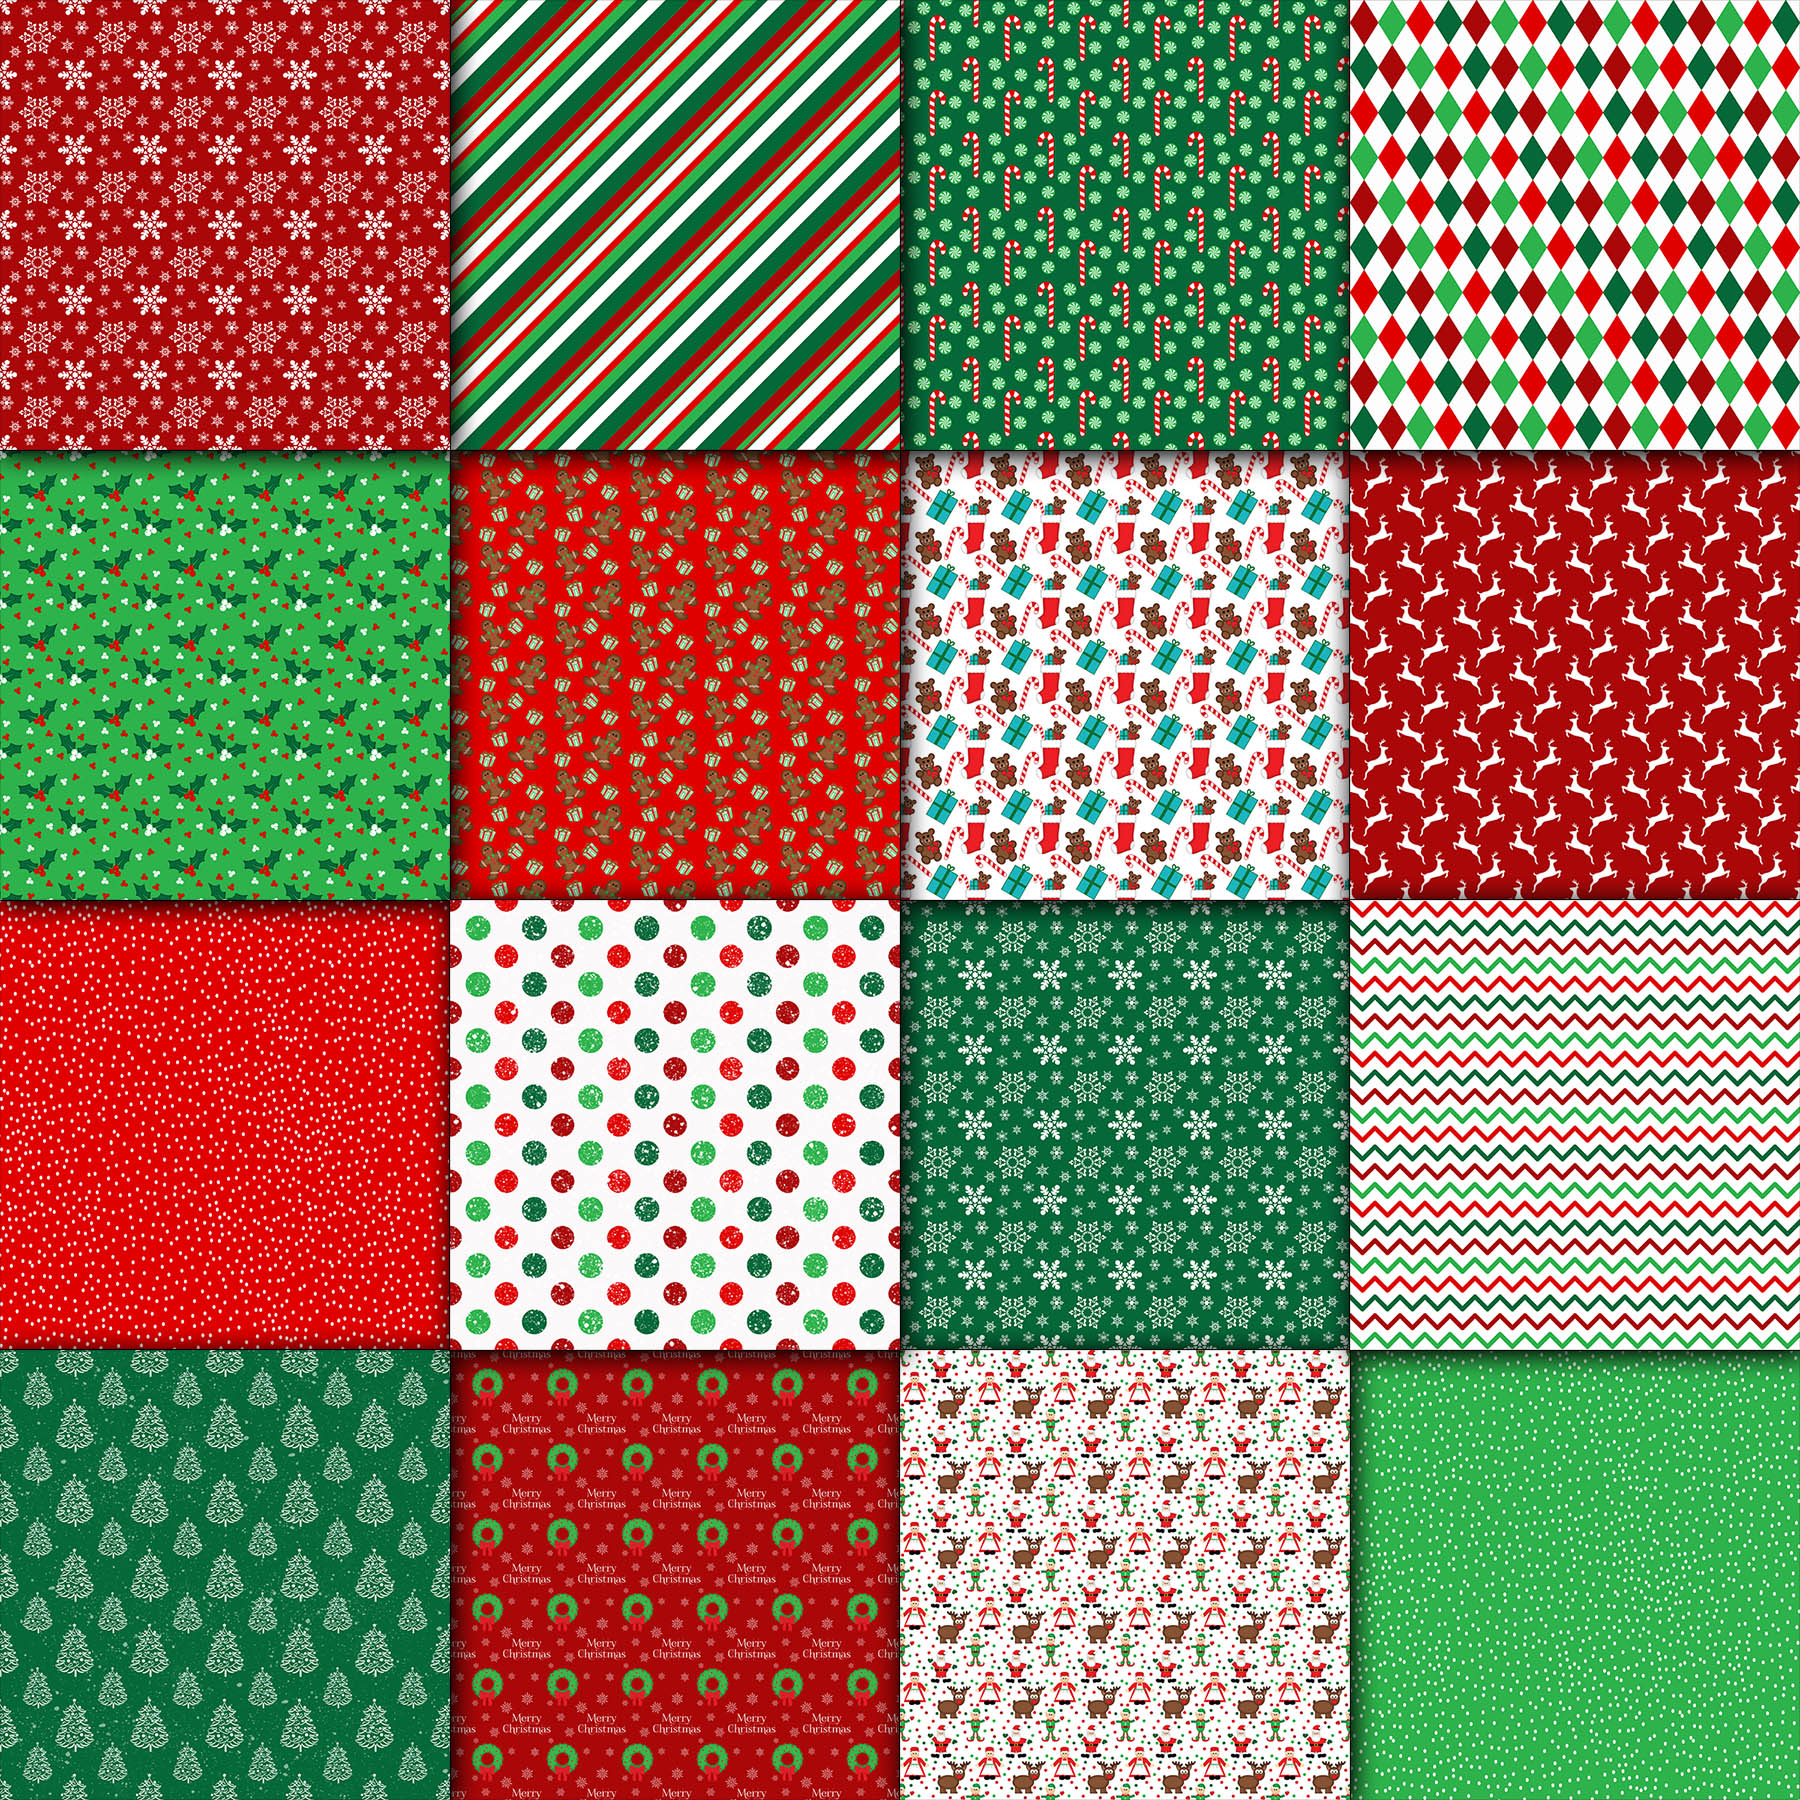 Download Free Christmas Digital Paper Graphic By Oldmarketdesigns Creative for Cricut Explore, Silhouette and other cutting machines.